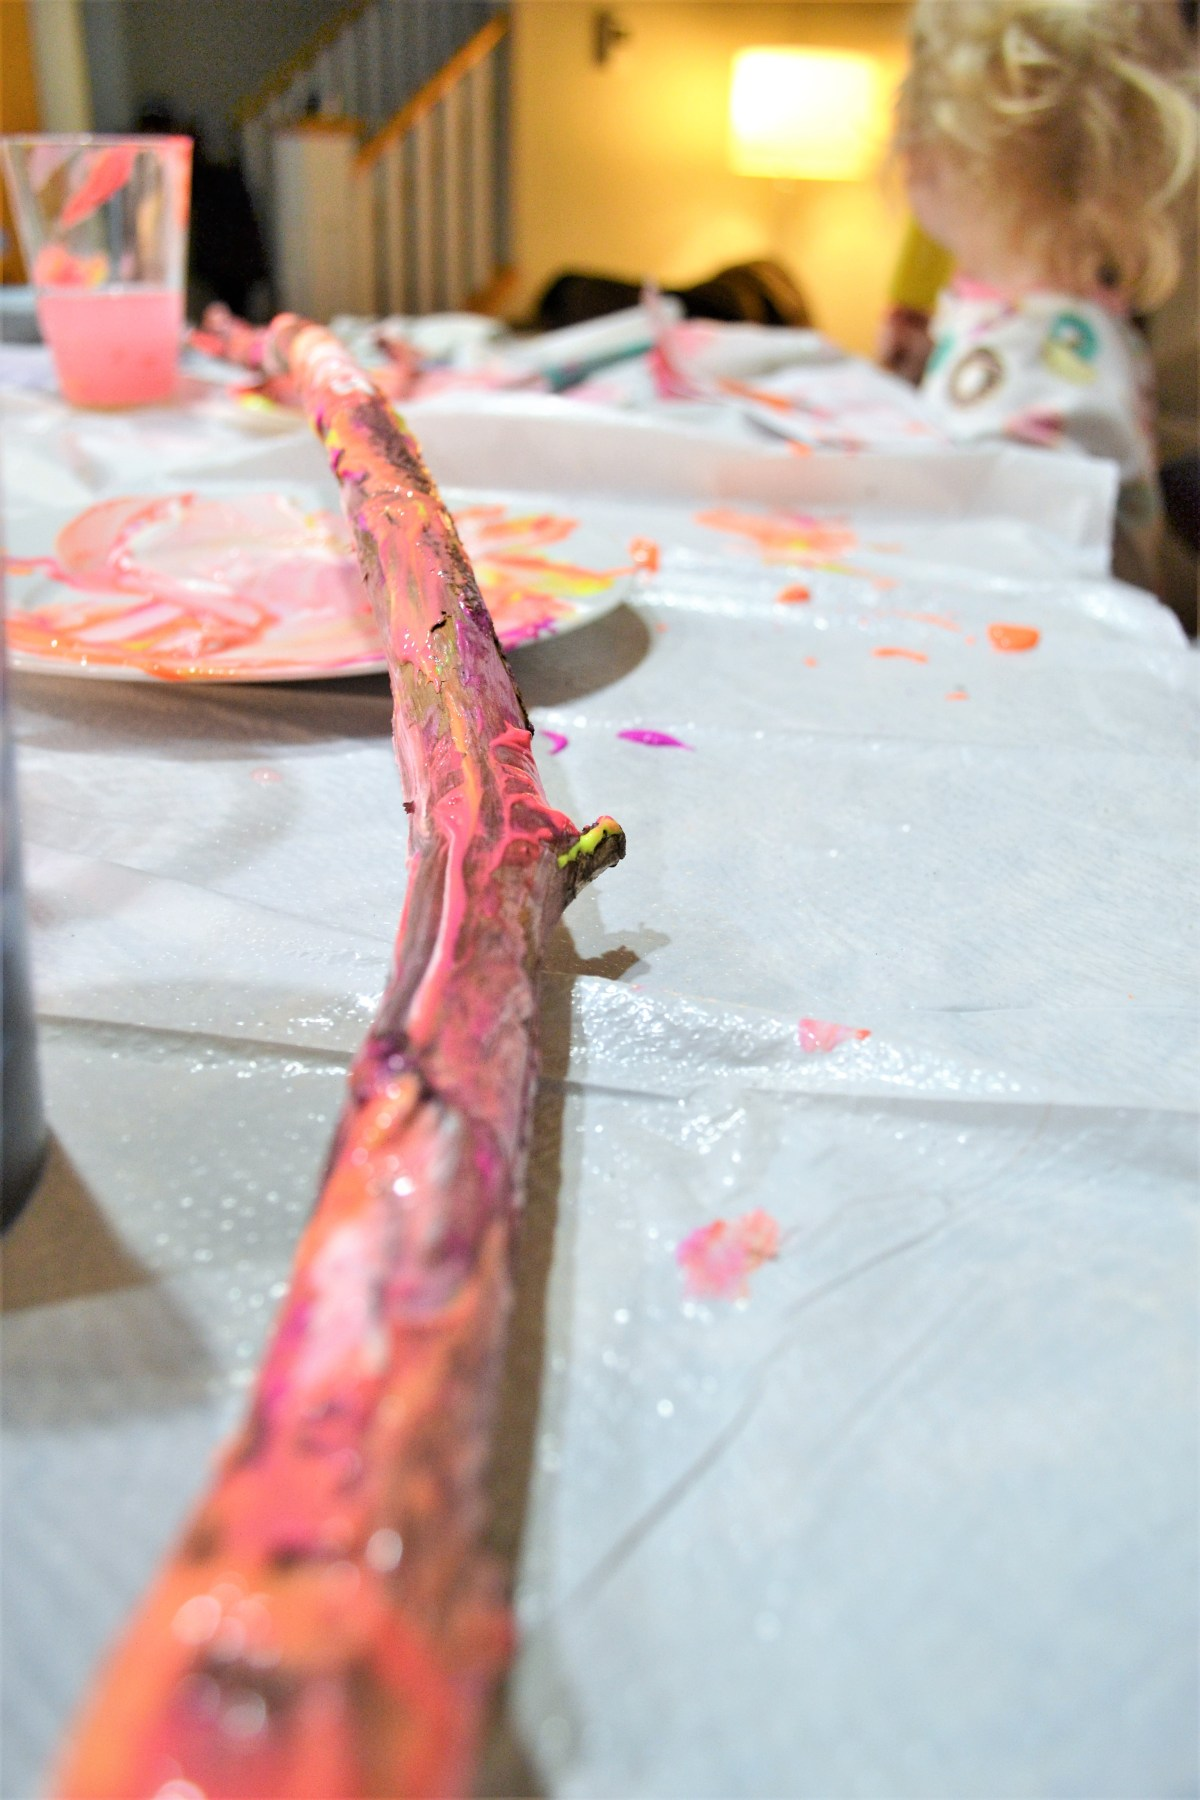 Crafts for kids - Painted Sticks!